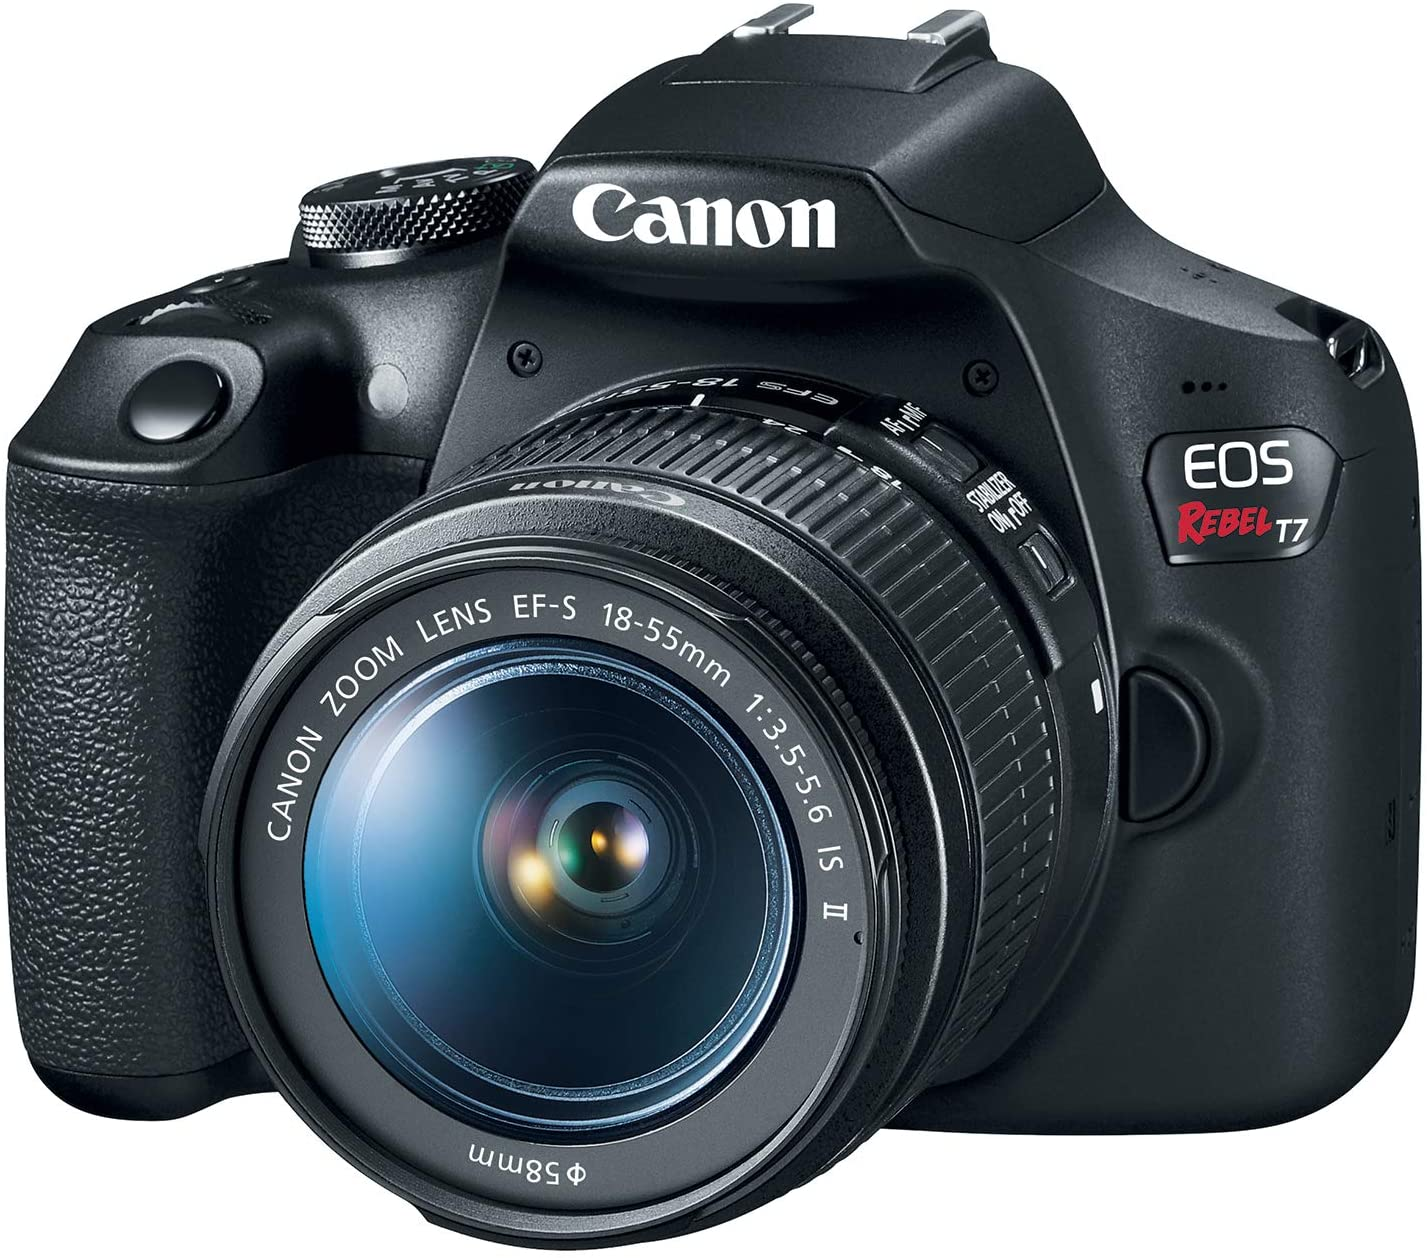 Canon EOS Rebel T7 DSLR Camera with 18-55mm Lens | Built-in Wi-Fi|24.1 MP CMOS Sensor | |DIGIC 4+ Image Processor and Full HD Videos